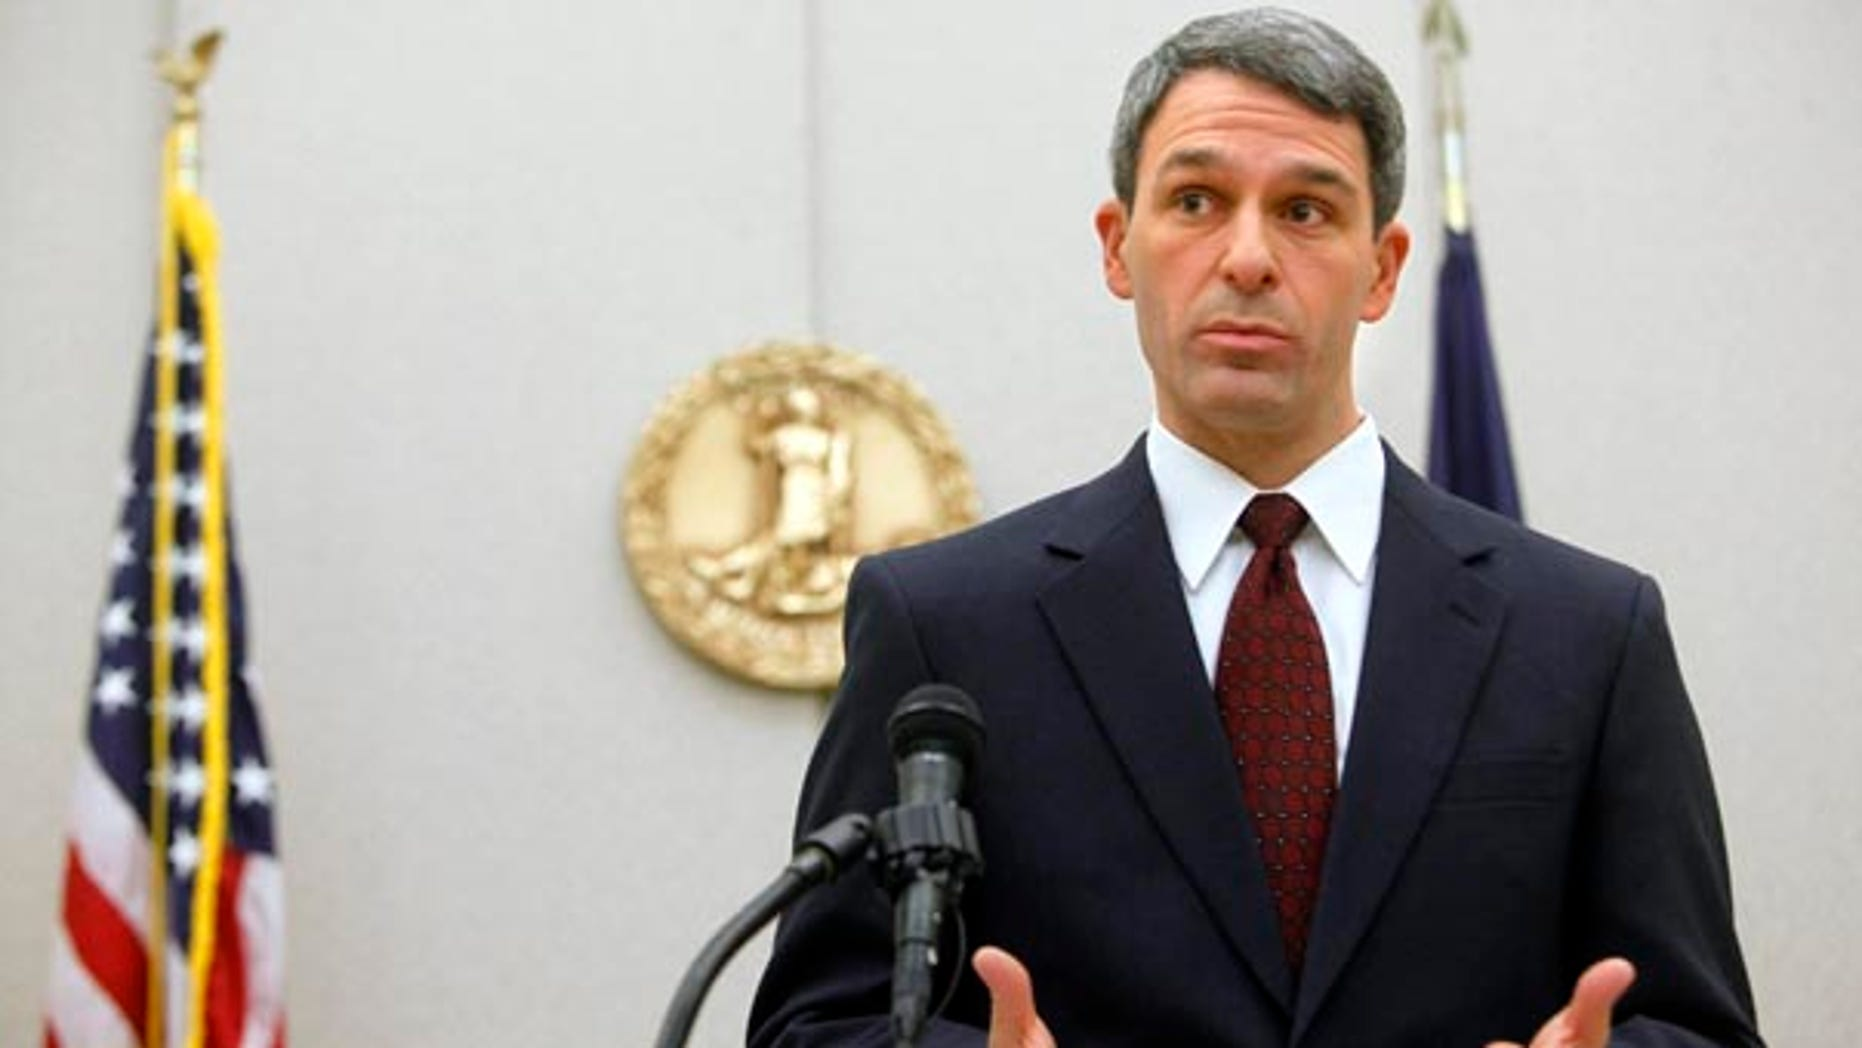 Former Virginia Attorney General Kenneth Cuccinelli was named as the new acting director of U.S. Citizenship and Immigration Services